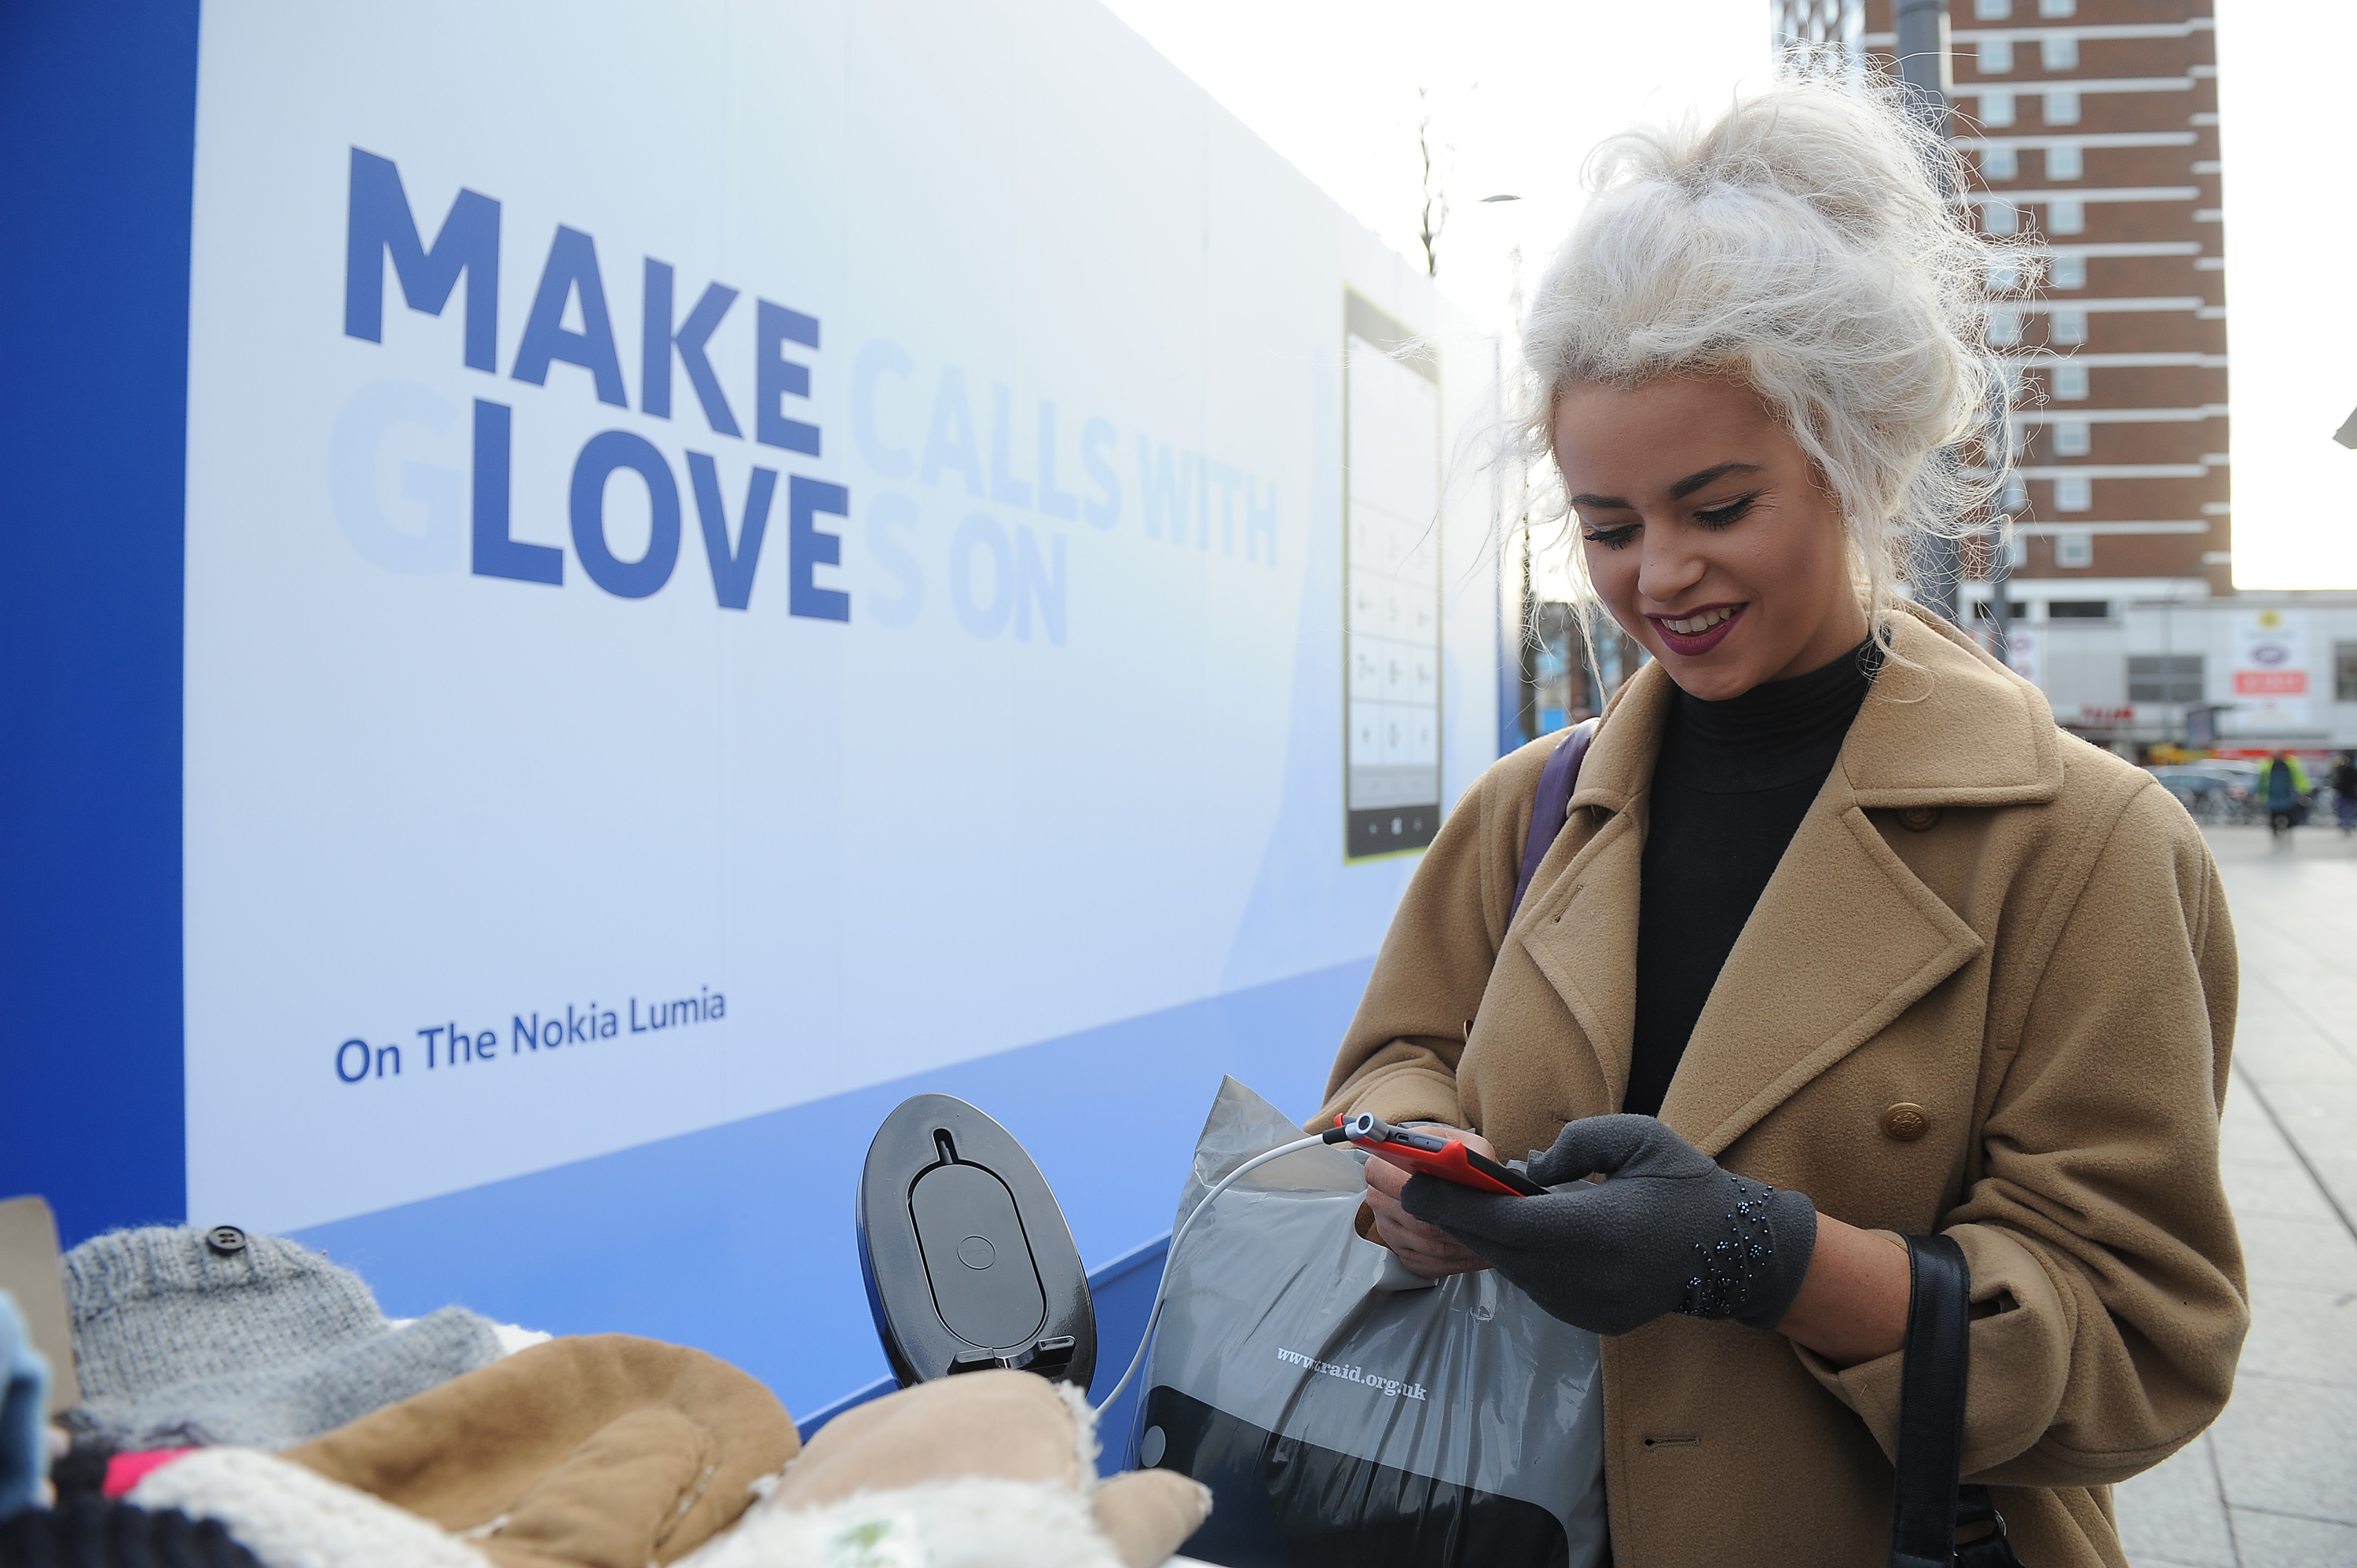 Thermo-reactive Billboards Debut for #NokiaGloveLove Campaign